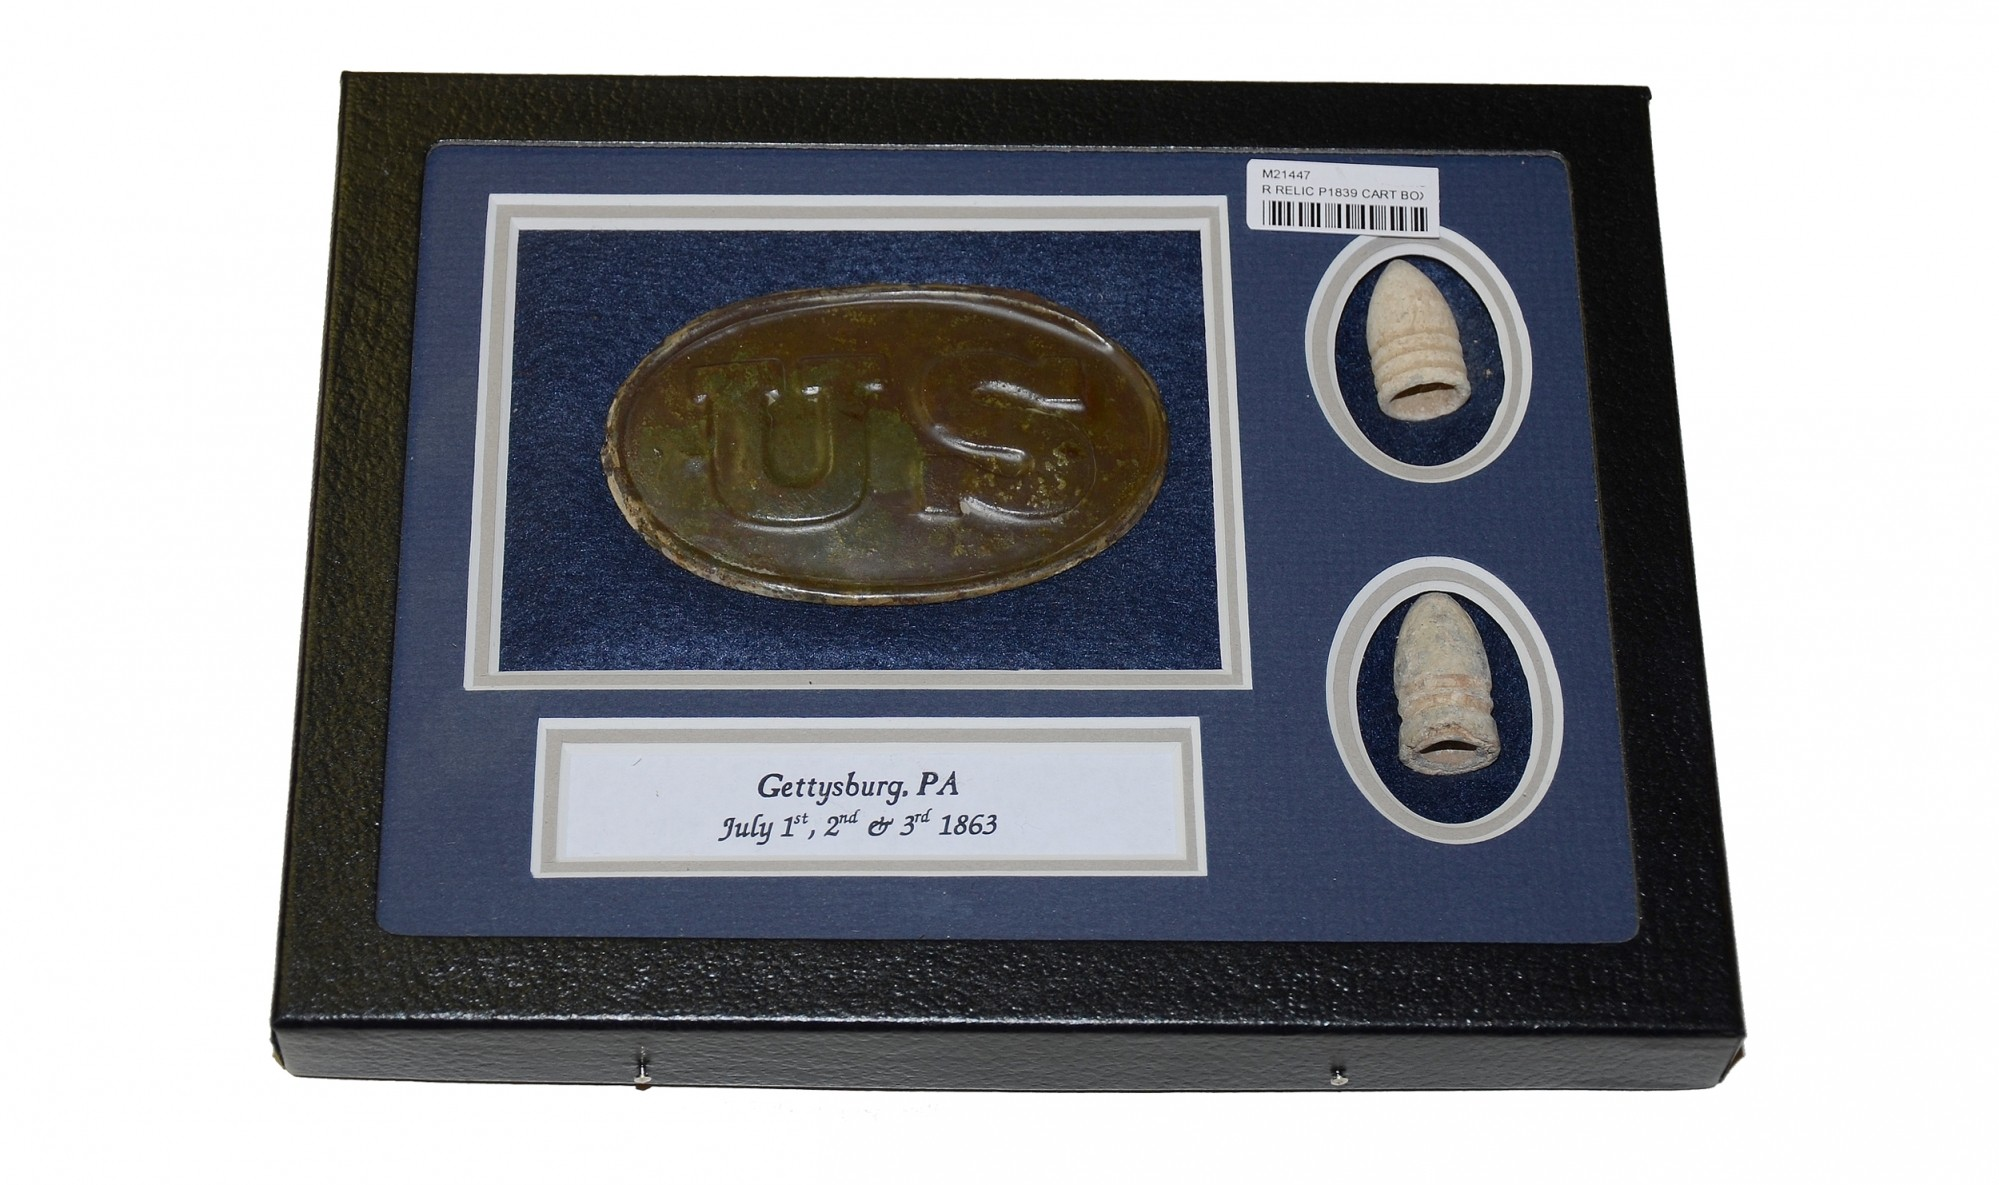 US PATTERN 1839 CARTRIDGE BOX PLATE FROM THE ROSENSTEEL GETTYSBURG COLLECTION